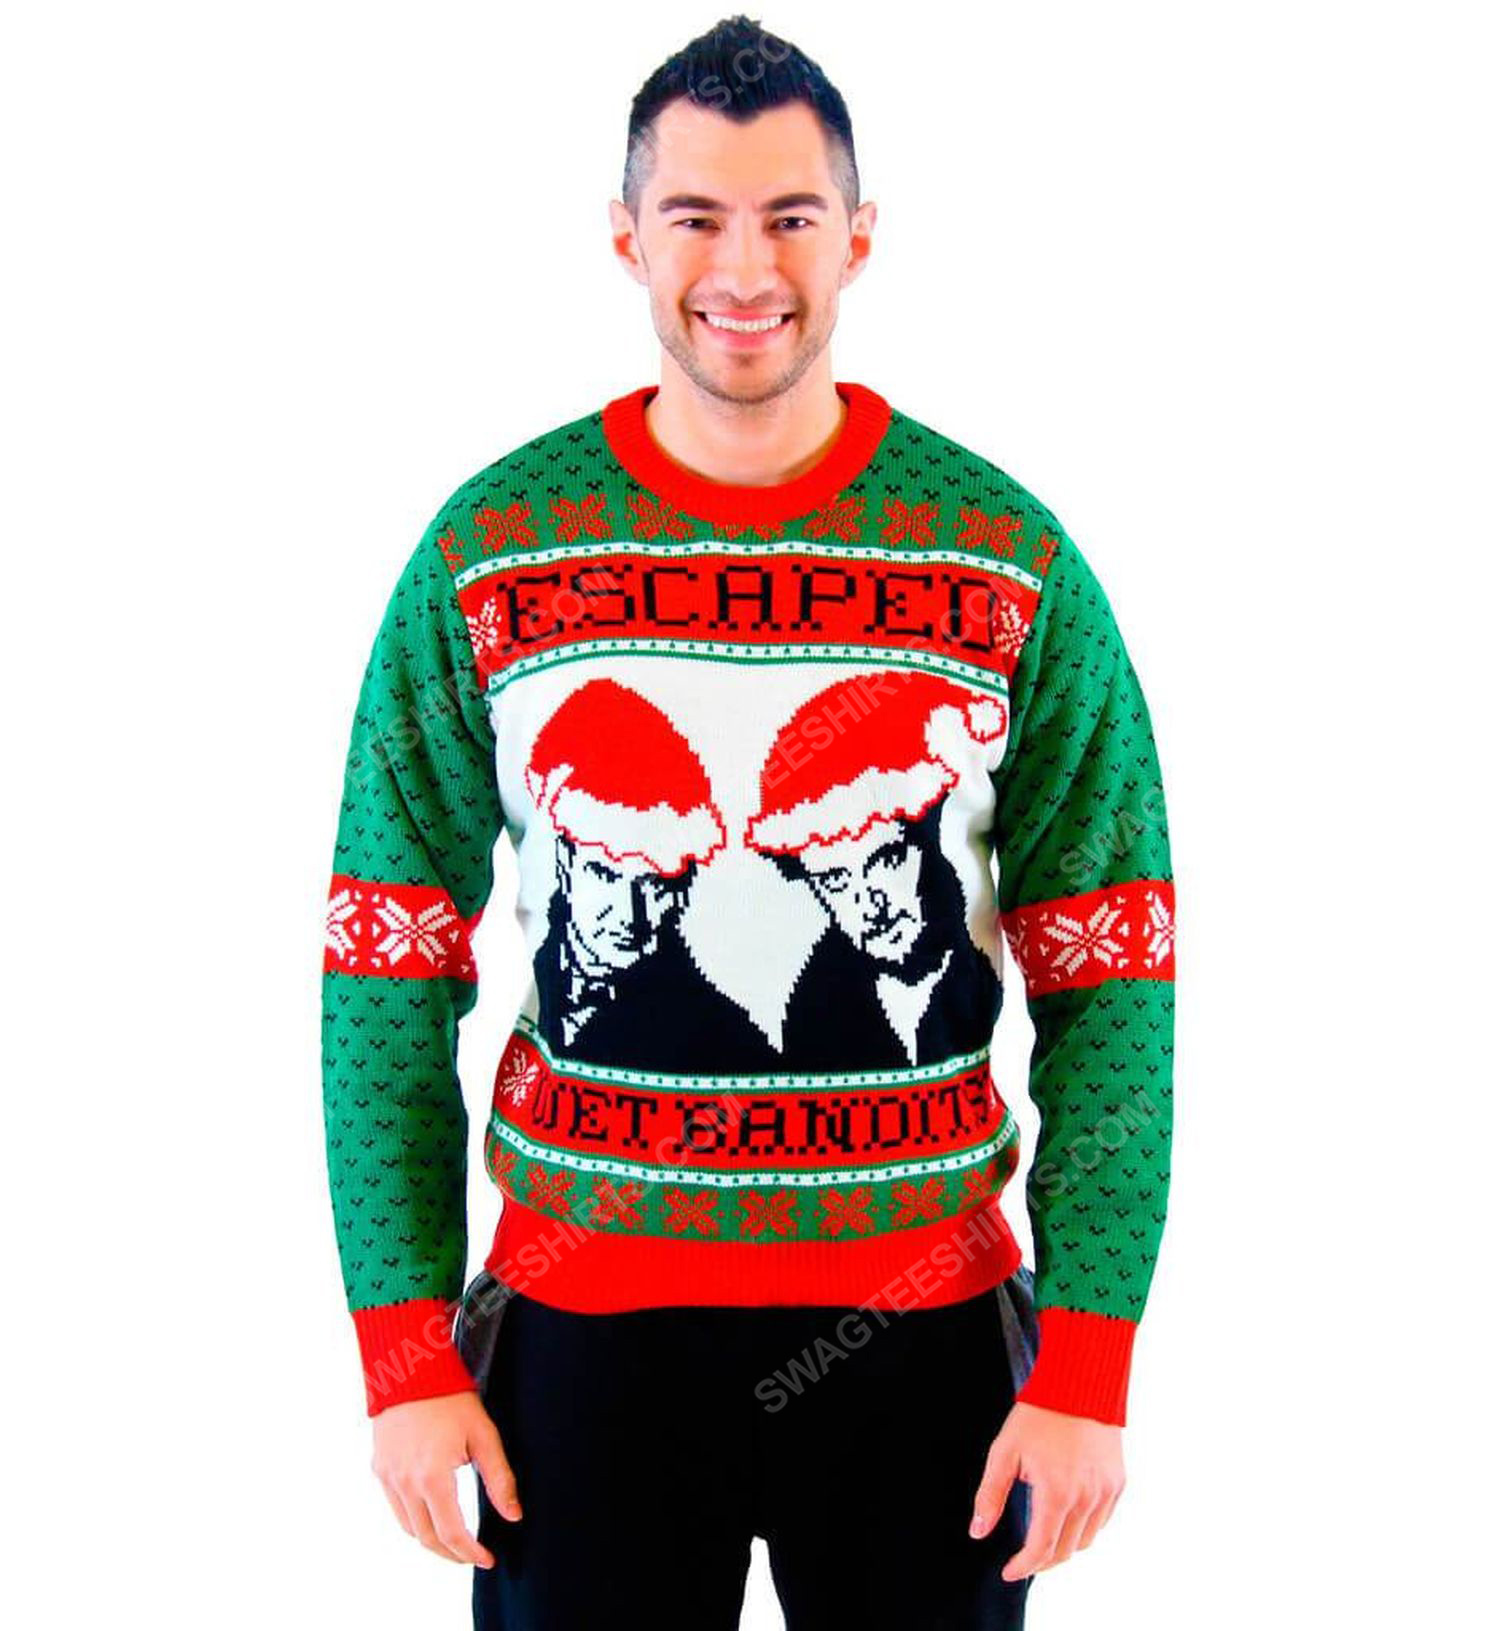 Home alone wet bandits full print ugly christmas sweater 2